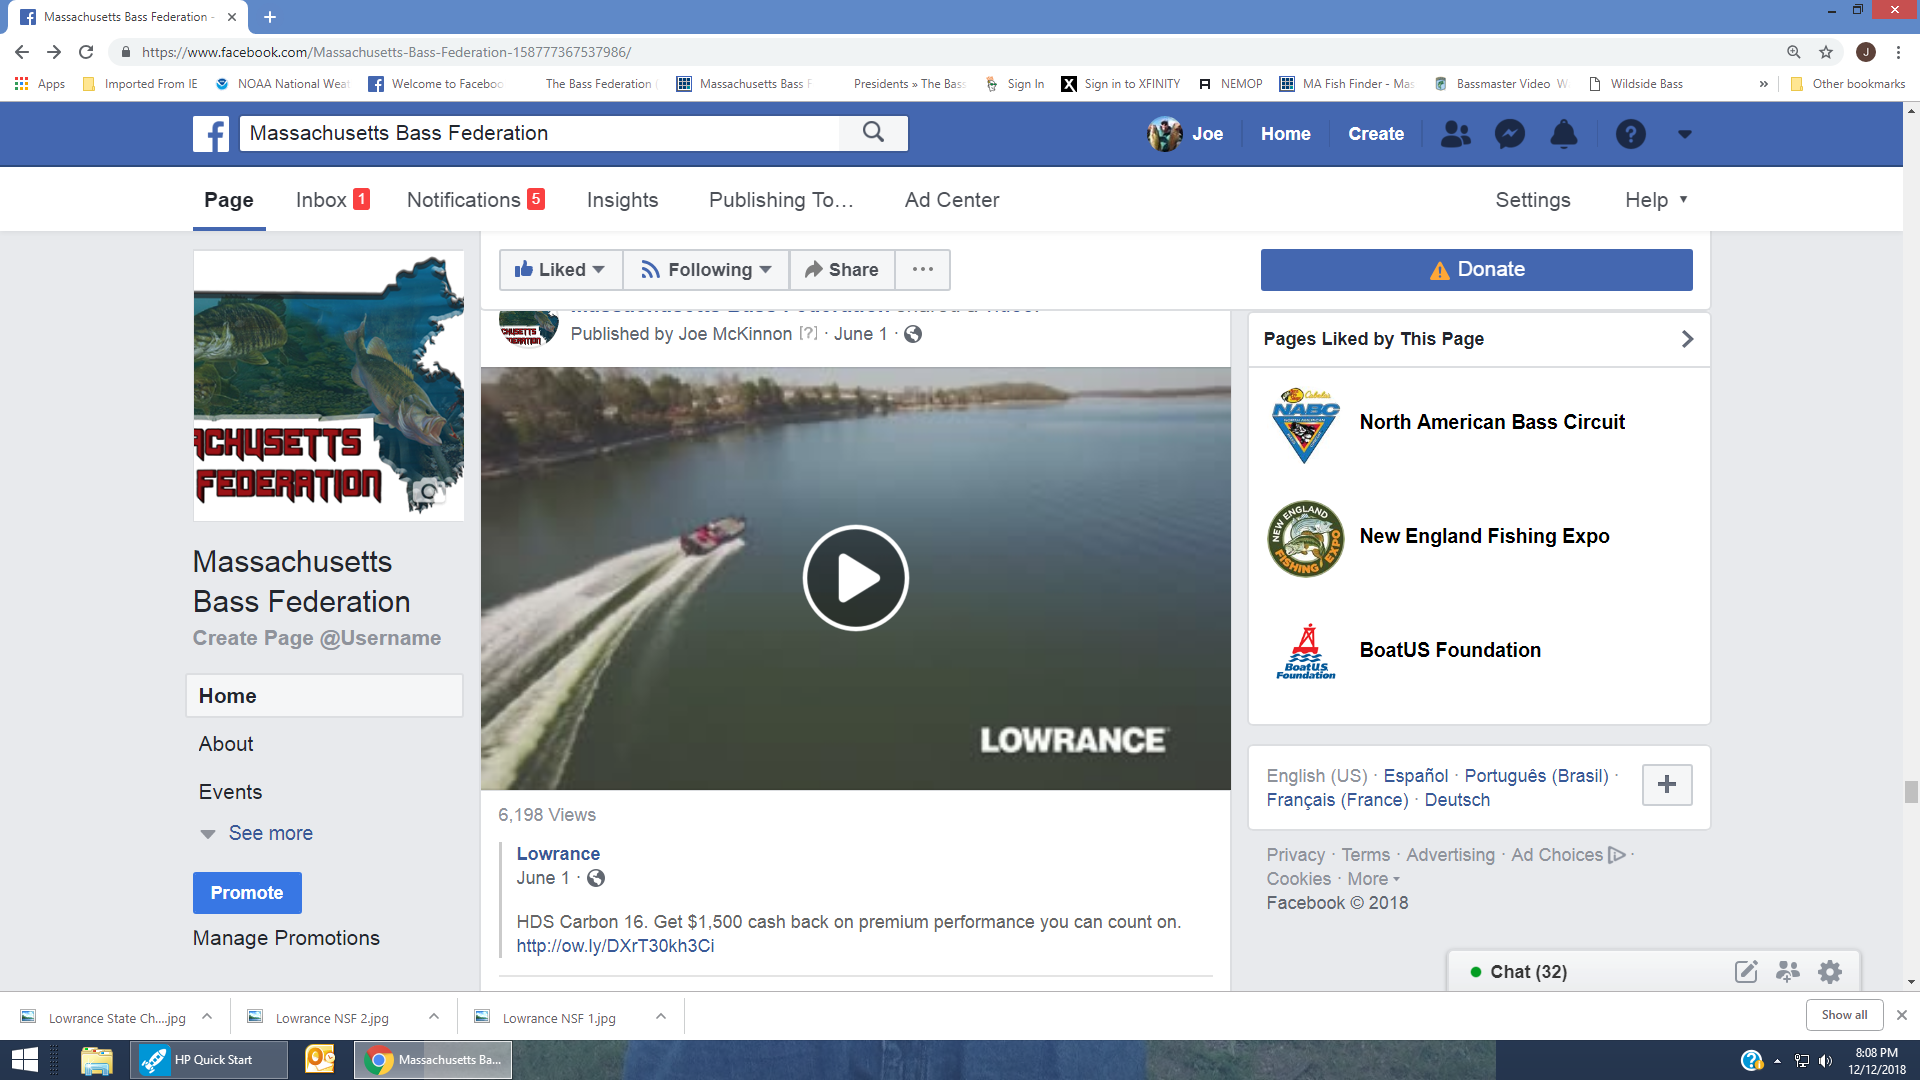 Lowrance Marketing – Massachusetts Bass Federation